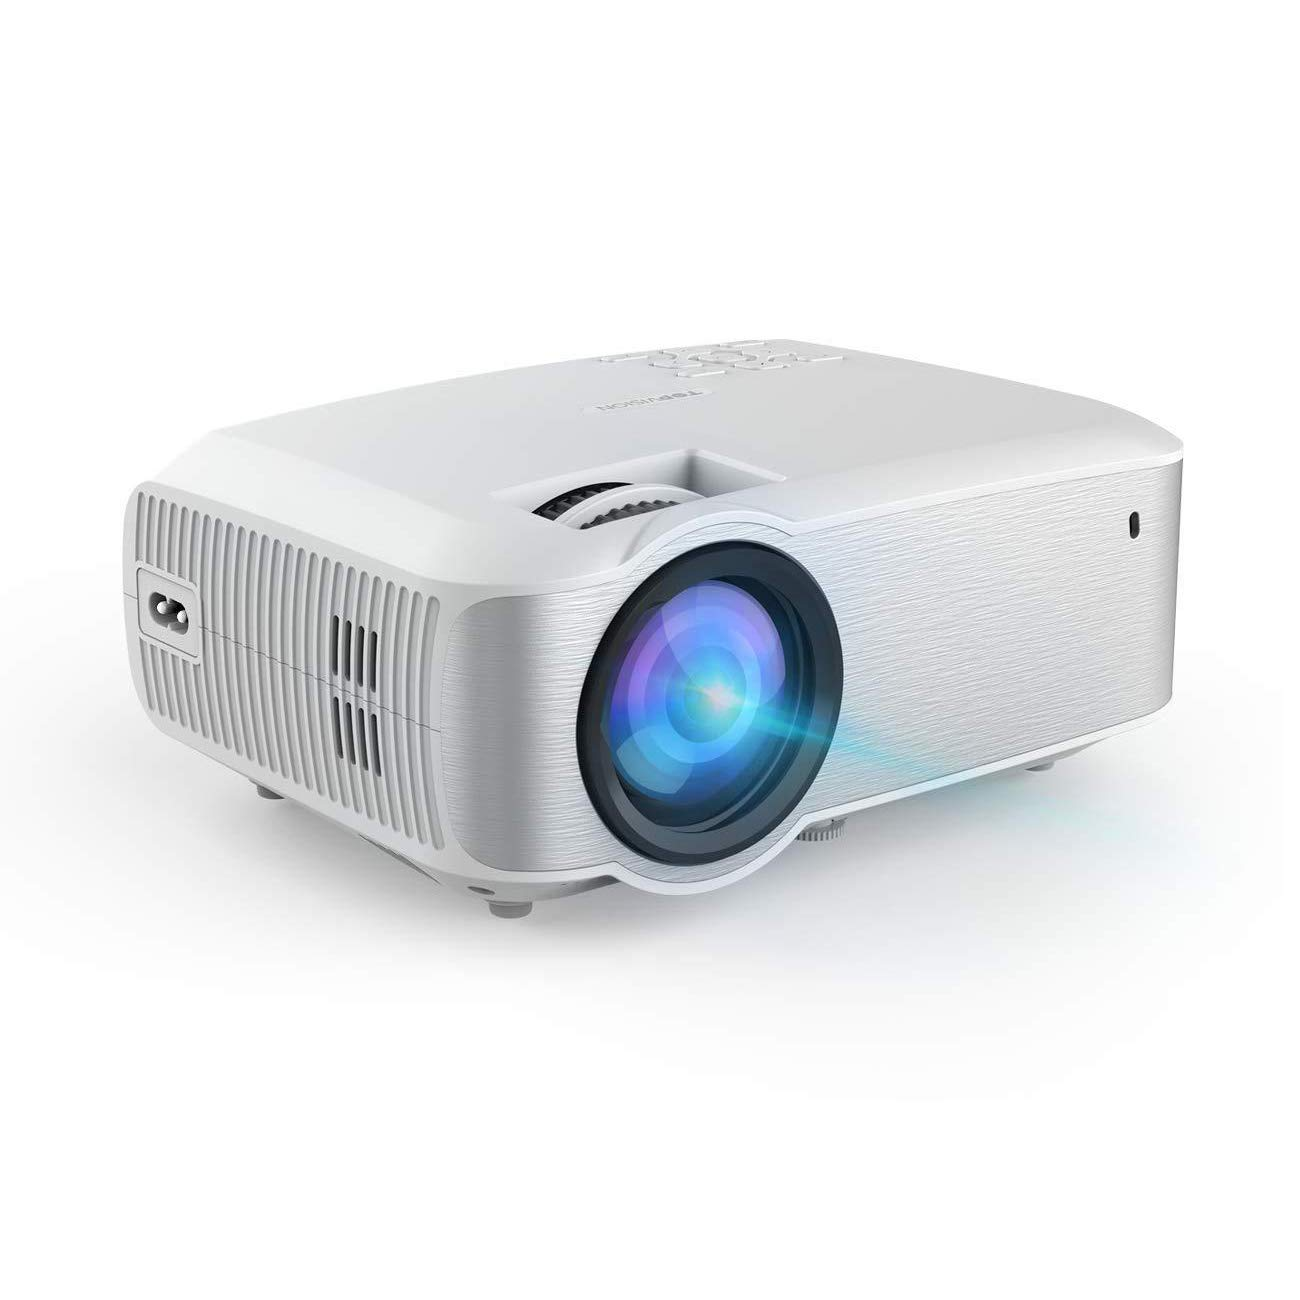 Video Projector, TOPVISION Full HD 1080P Supported LED Projector with 3800Lux,60,000 Hrs Home Movie Projector for Indoor/Outdoor with Dual Speakers, Compatible with Fire TV Stick, PS4,HDMI,VGA,AV,USB by TOPVISION